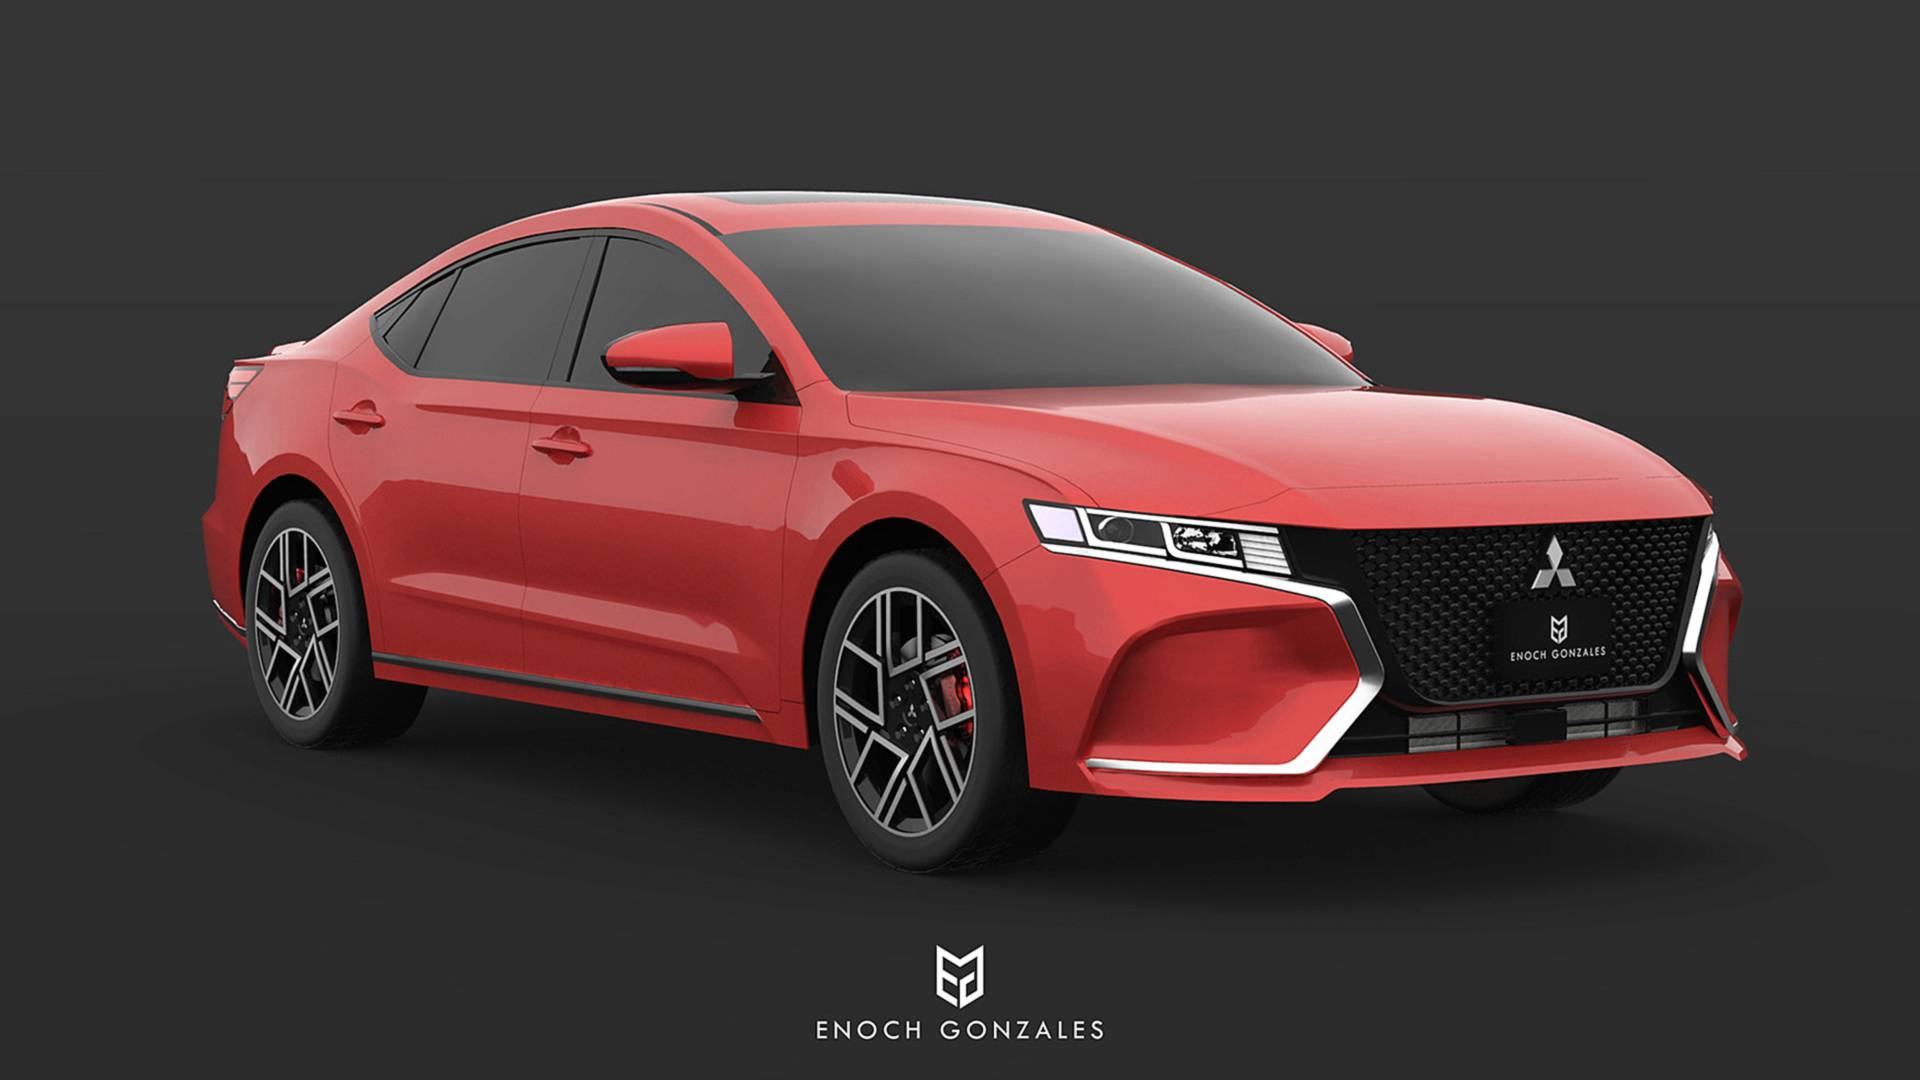 2020 Mitsubishi Galant Is Unfortunately Only A Nice Render